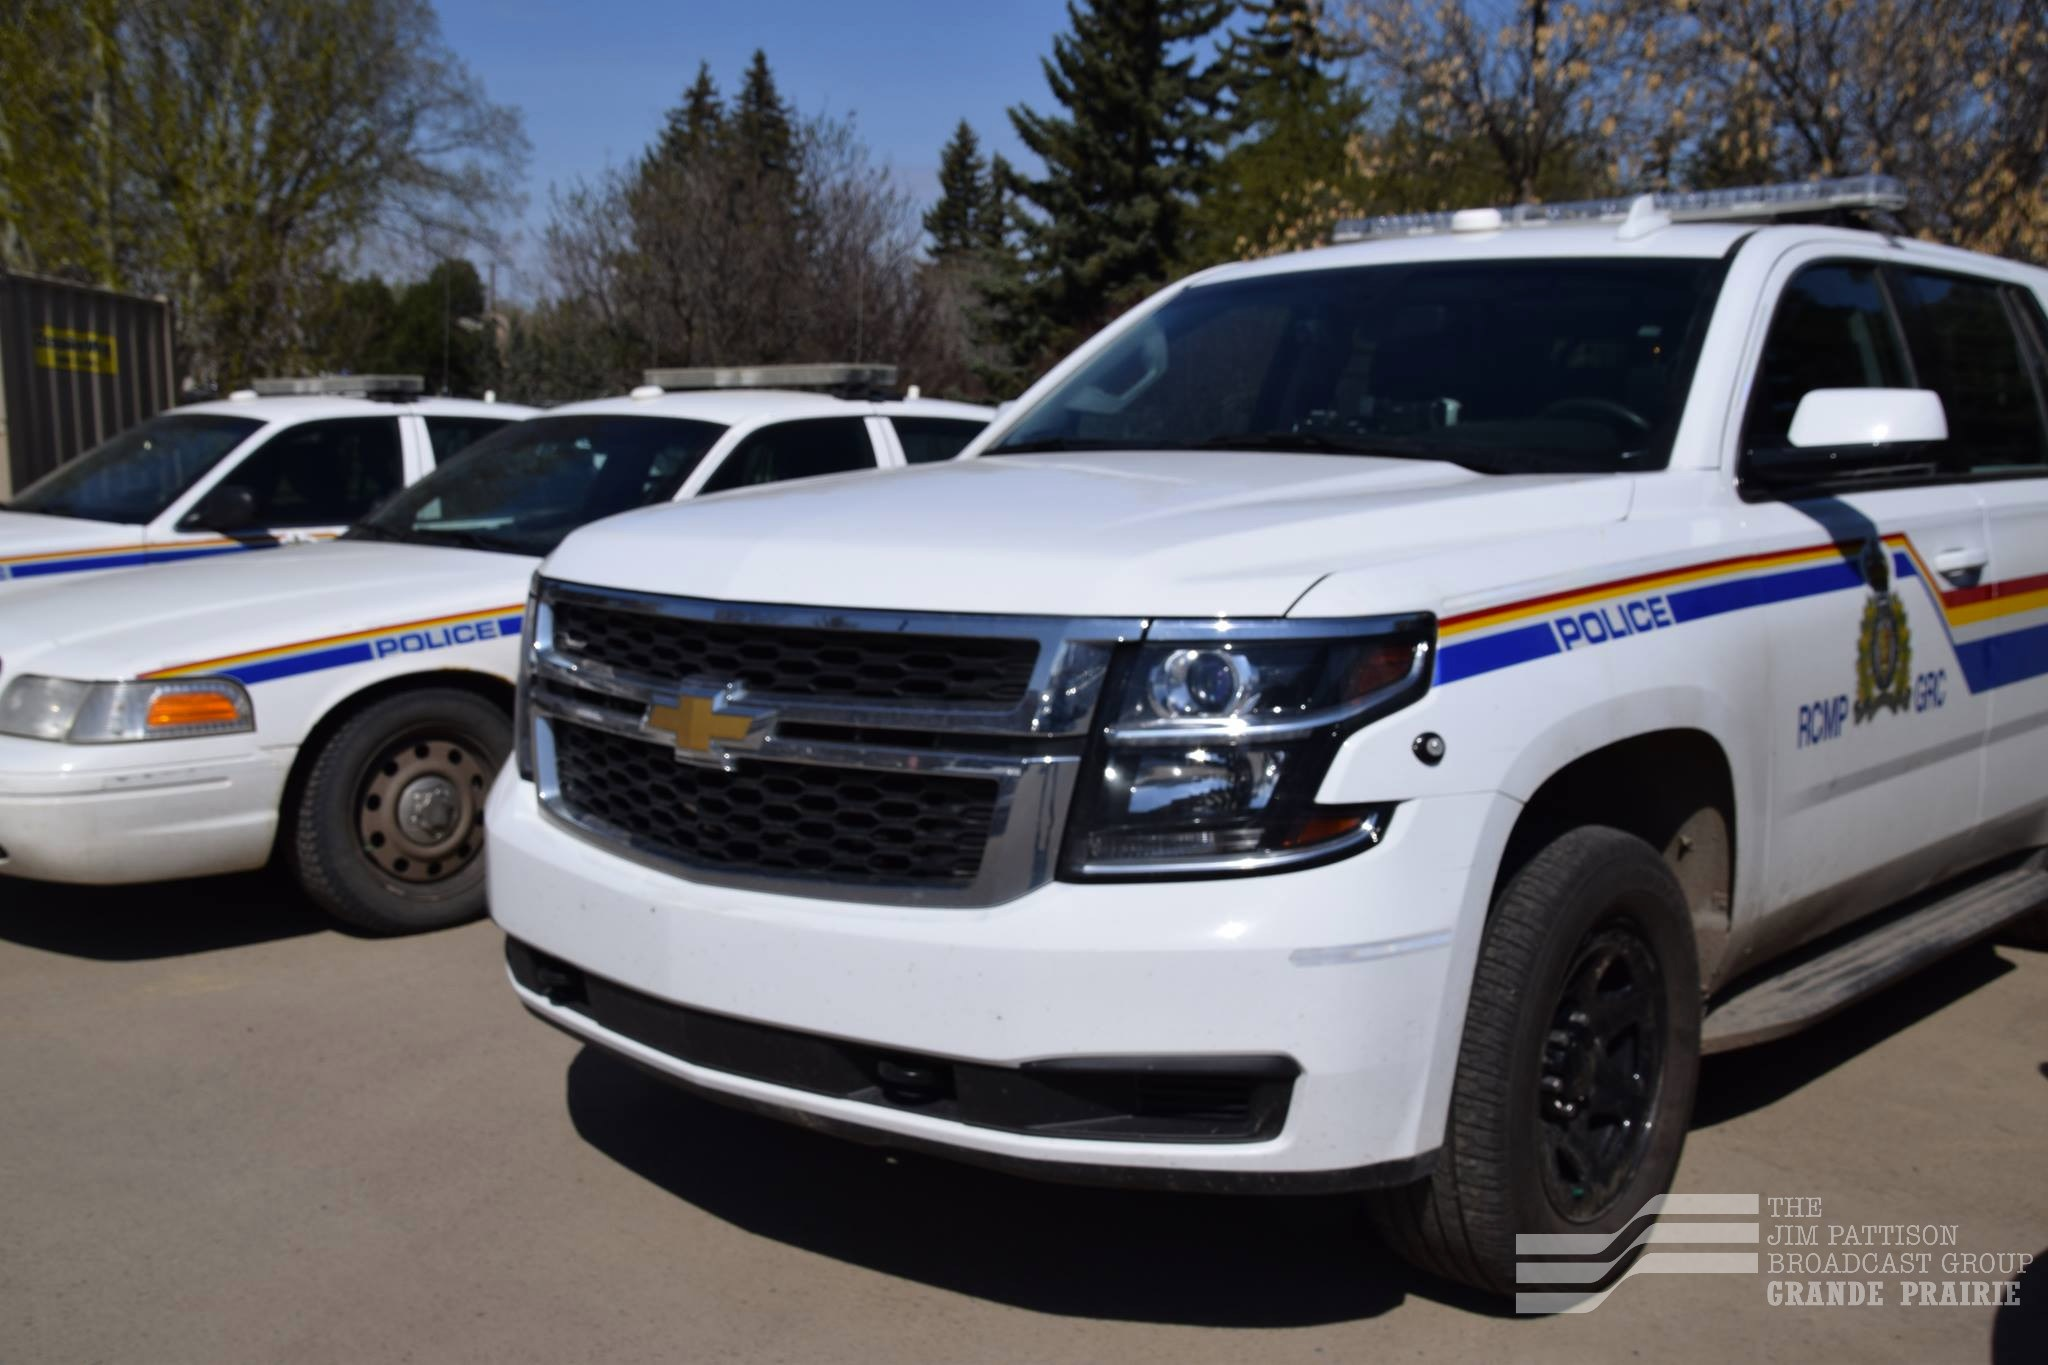 Investigation into Grovedale robbery continues